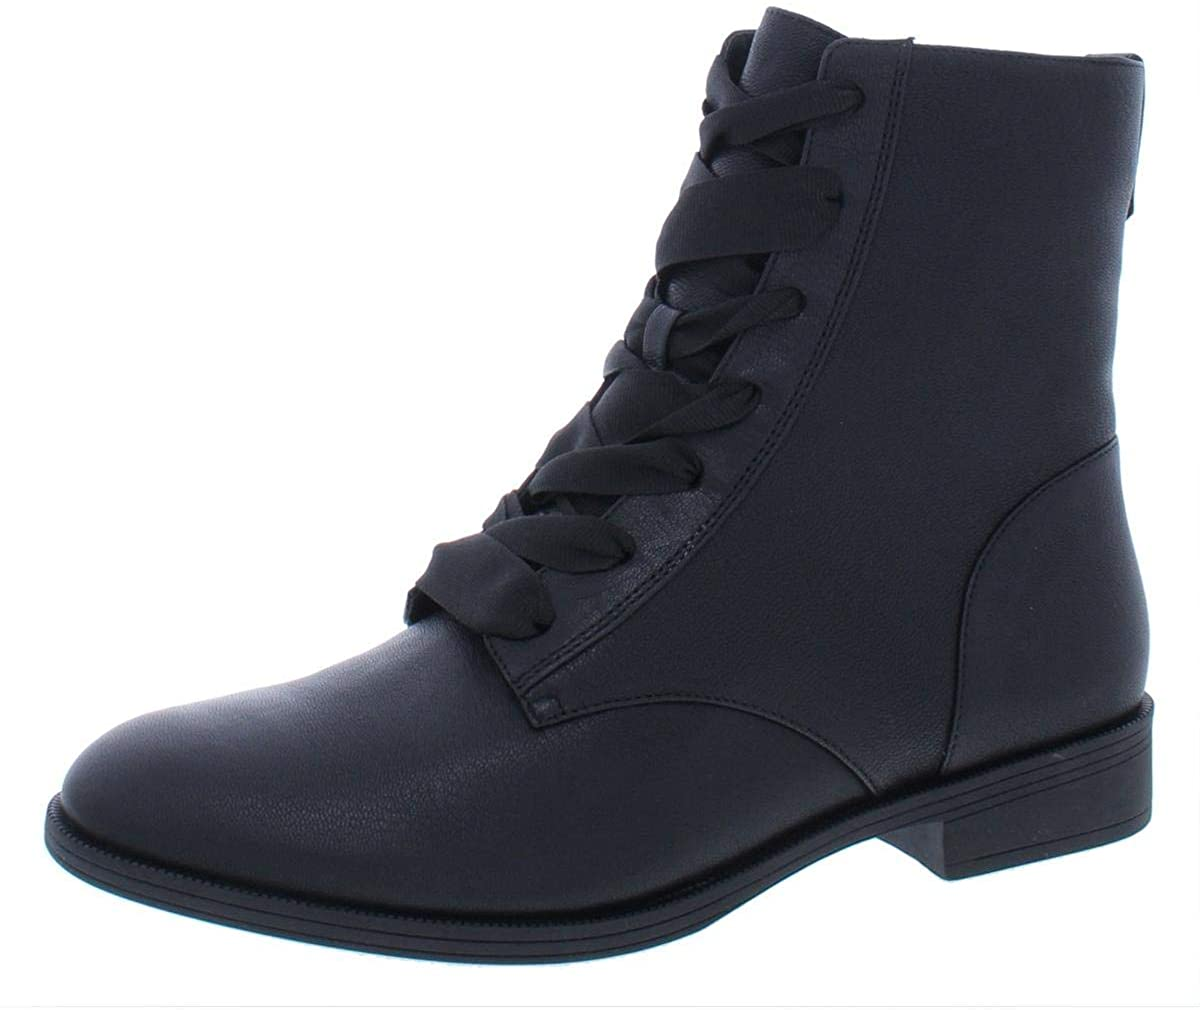 Vionic Women's Holden Jayce Ribbon Lace Up Boots - Ladies Boots with Waterproof Leather Upper and Concealed Orthotic Arch Support